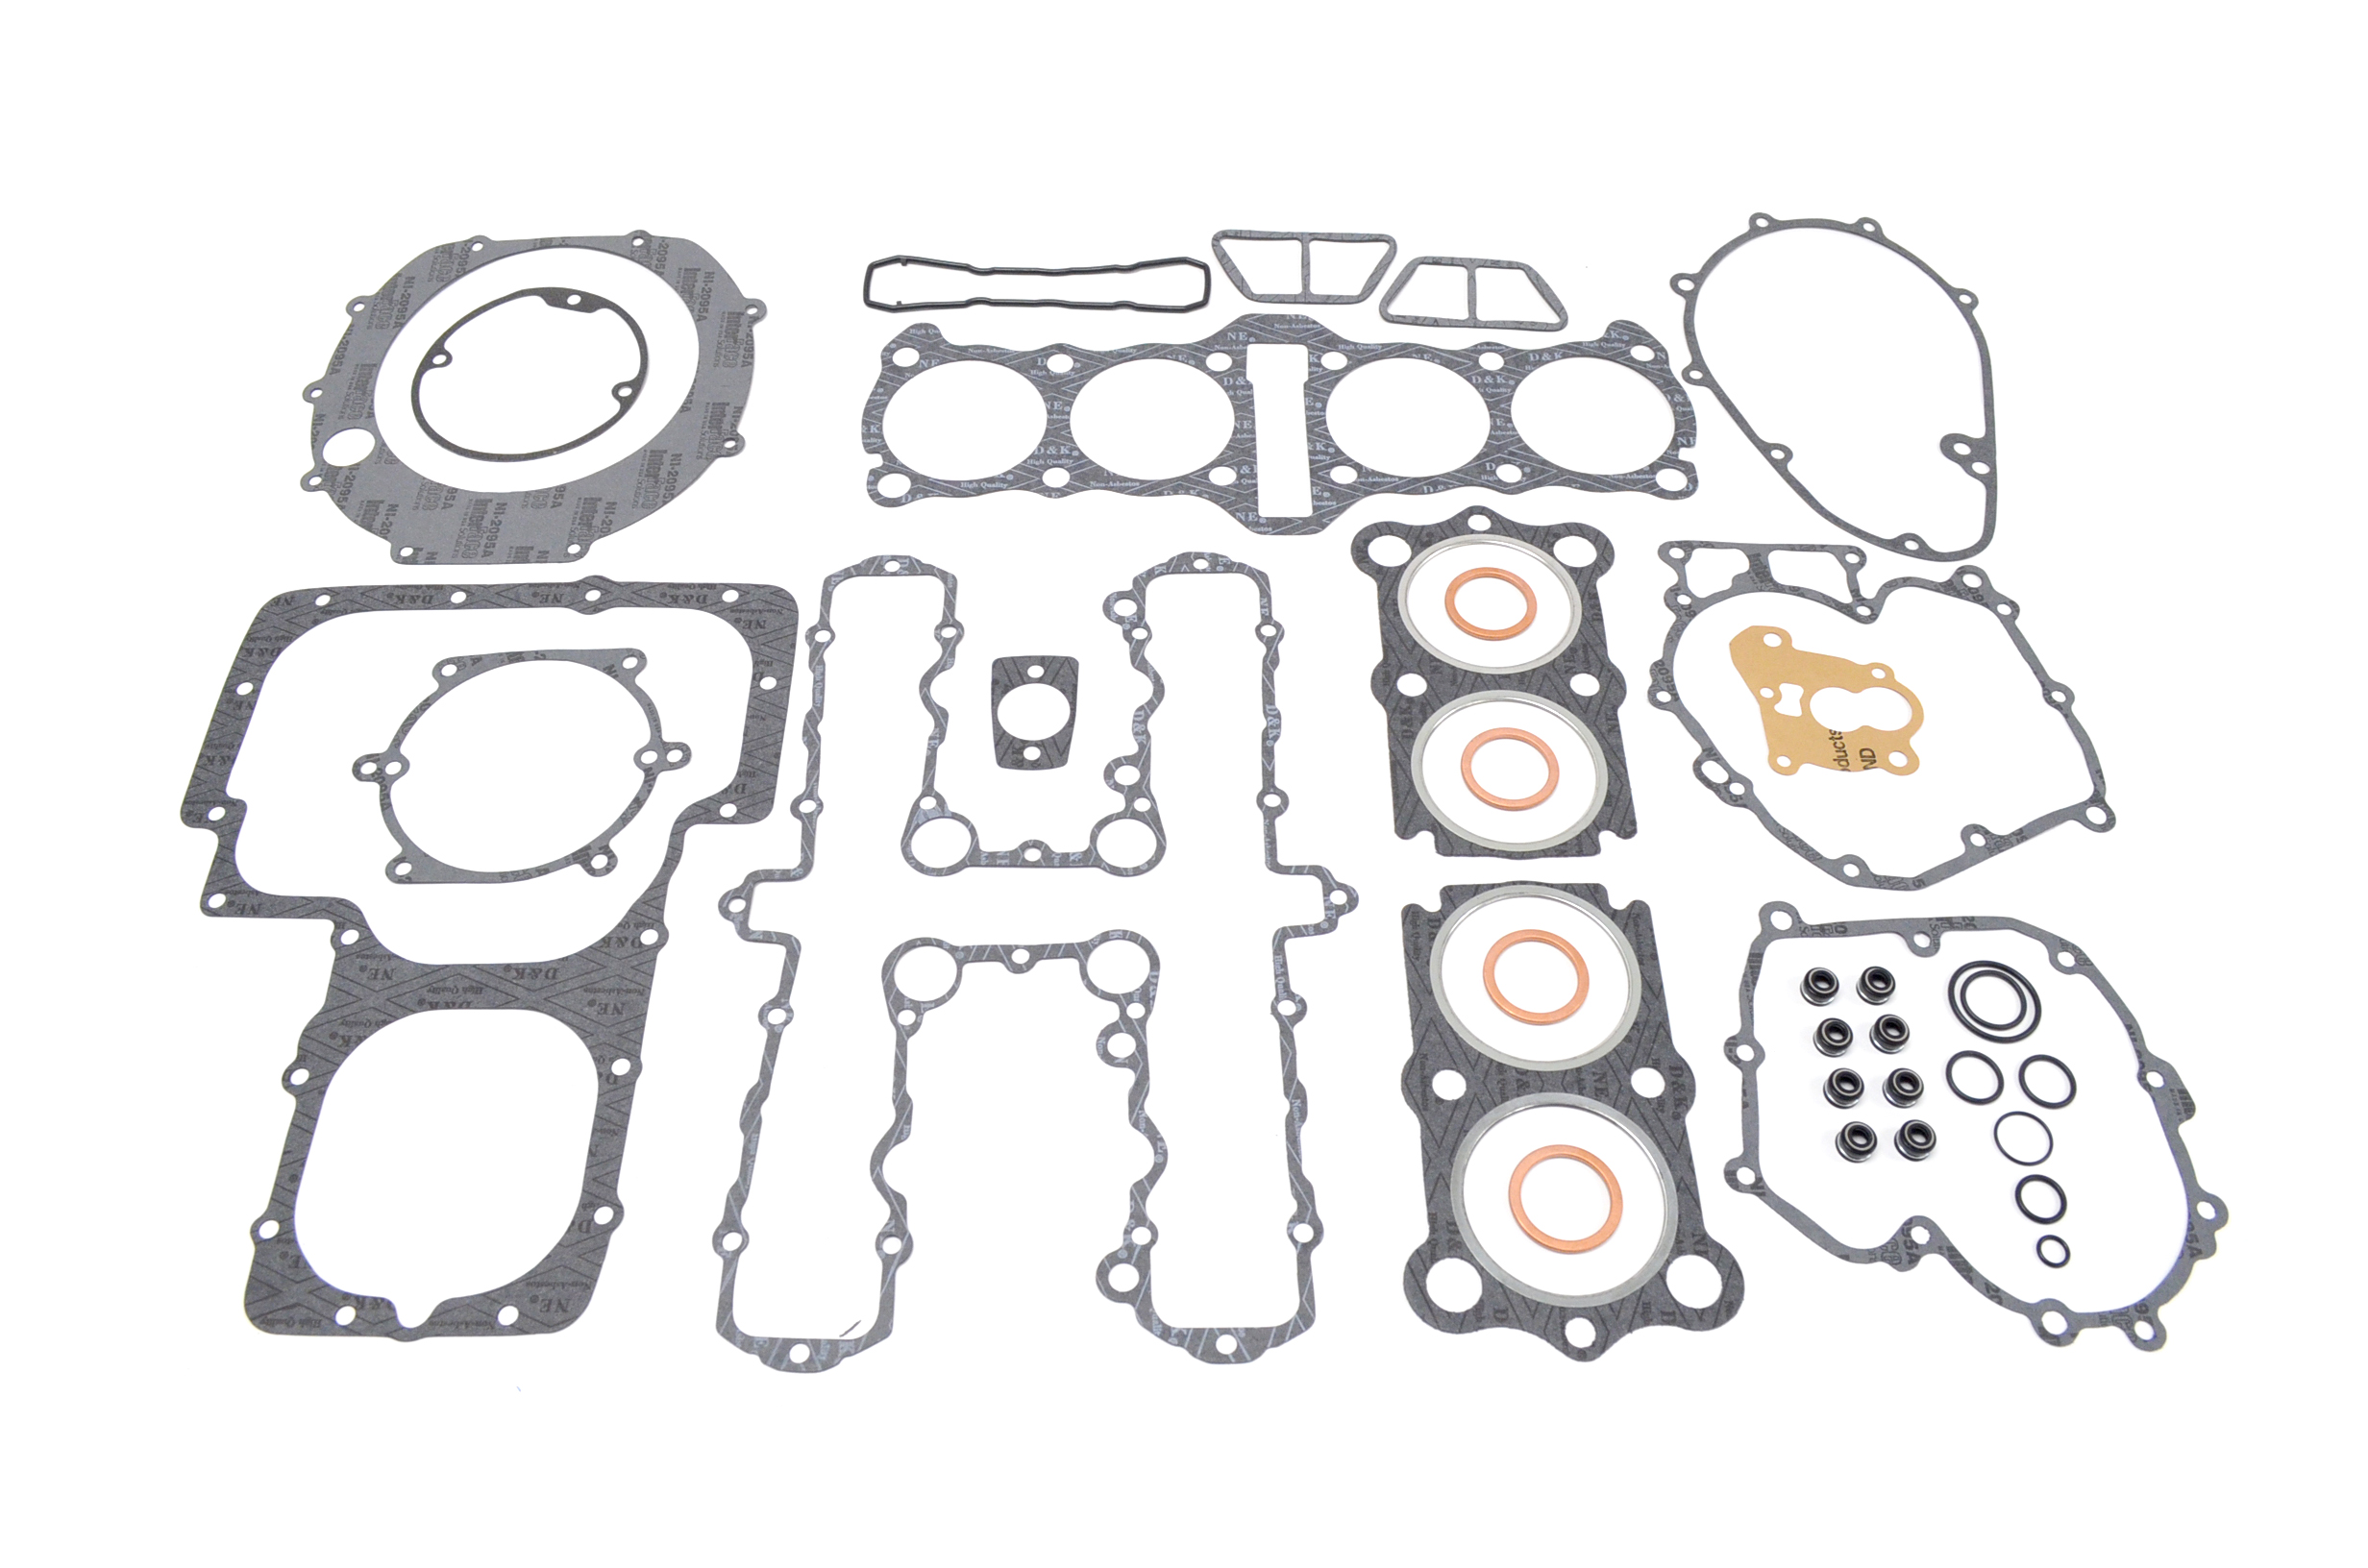 kawasaki kz1100 top bottom end complete engine gasket set kit